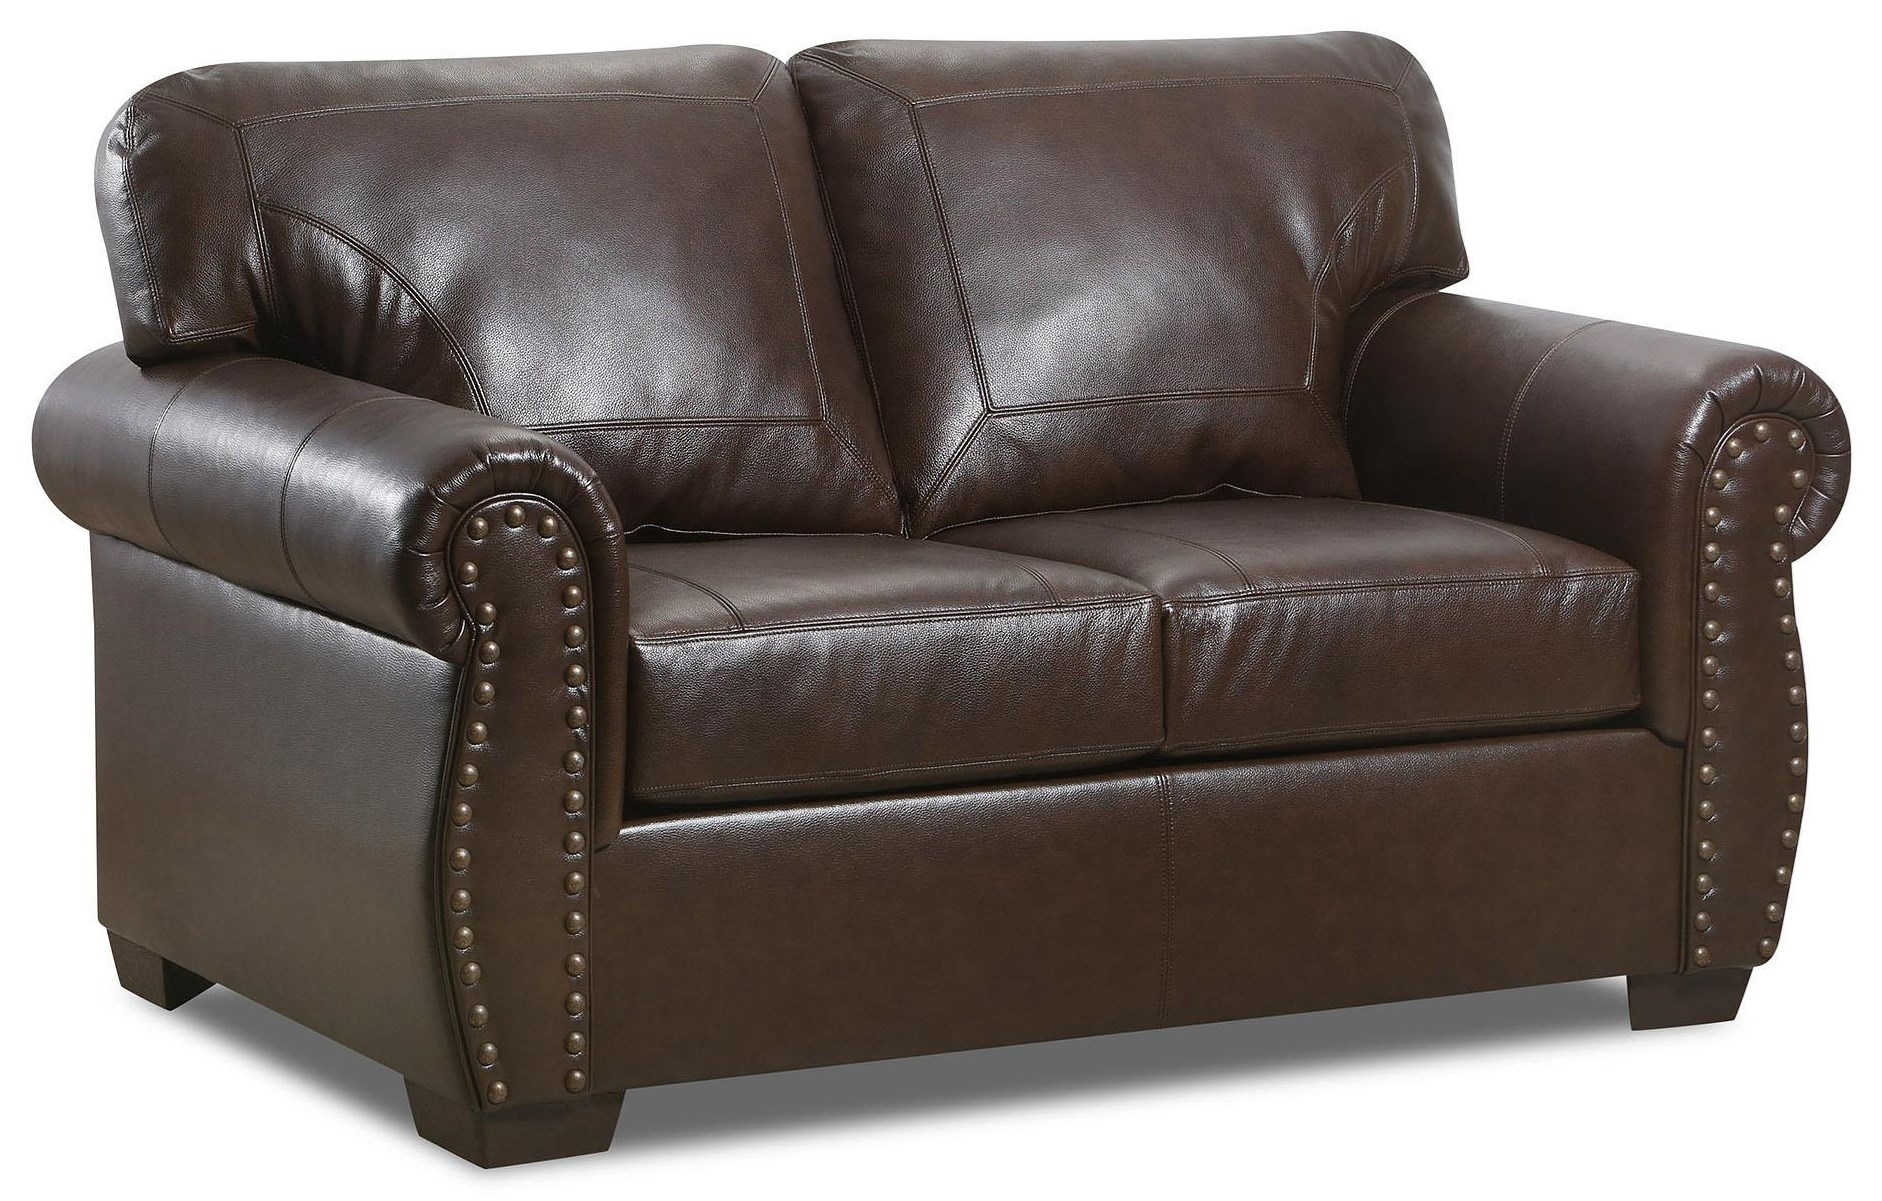 2075 Leather Nail Head Loveseat by Lane at Furniture Fair - North Carolina